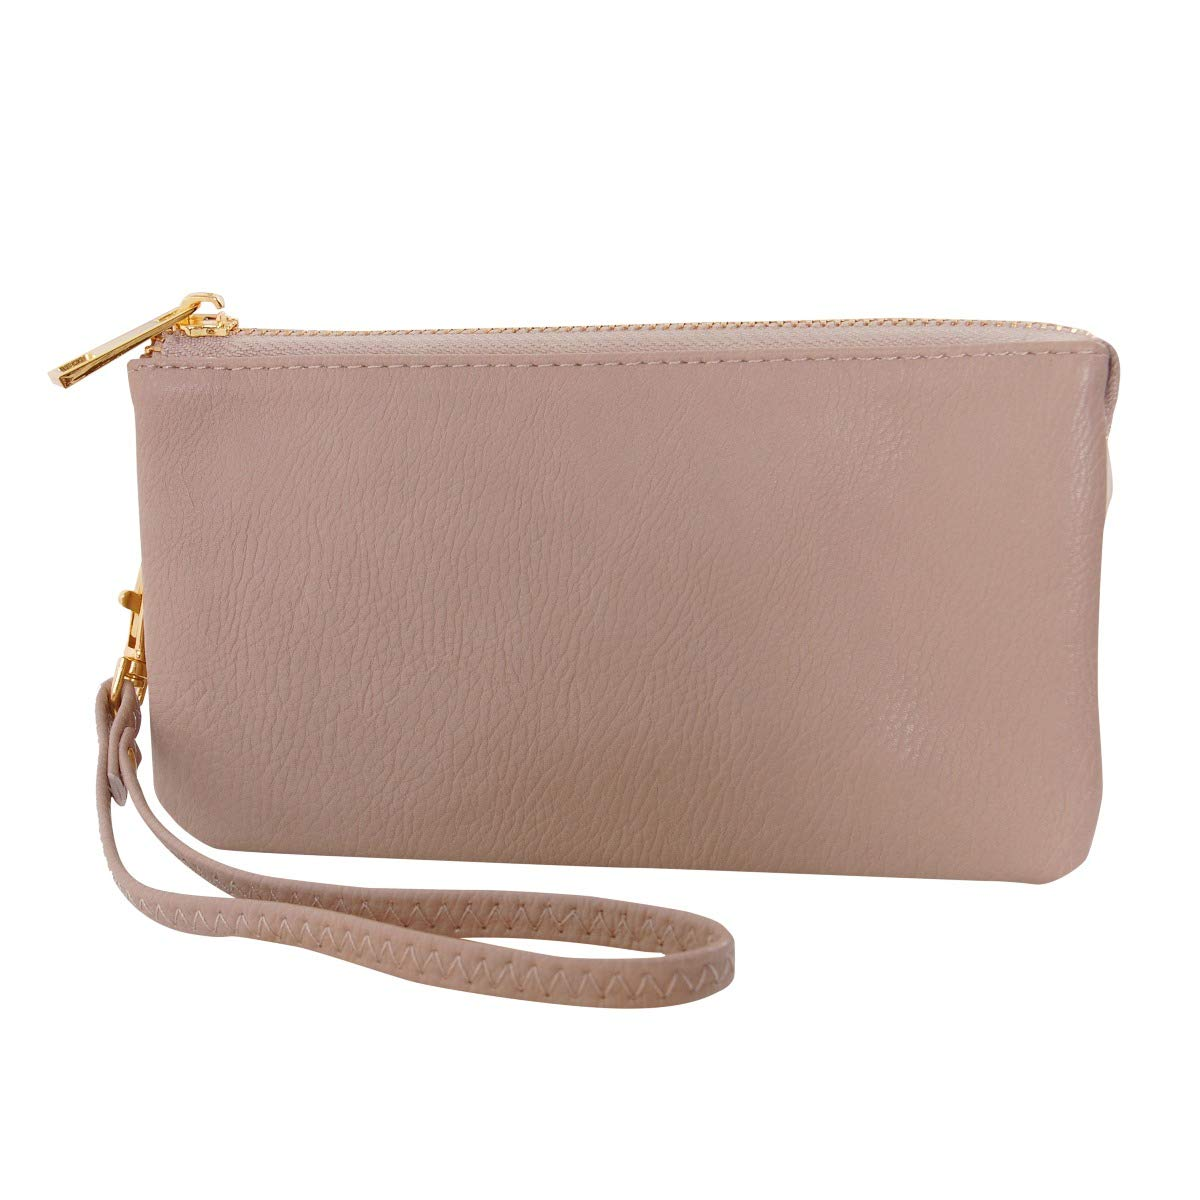 Humble Chic Vegan Leather Wristlet Wallet Clutch Bag - Small Phone Purse Handbag, Tan, Nude, Beige by Humble Chic NY